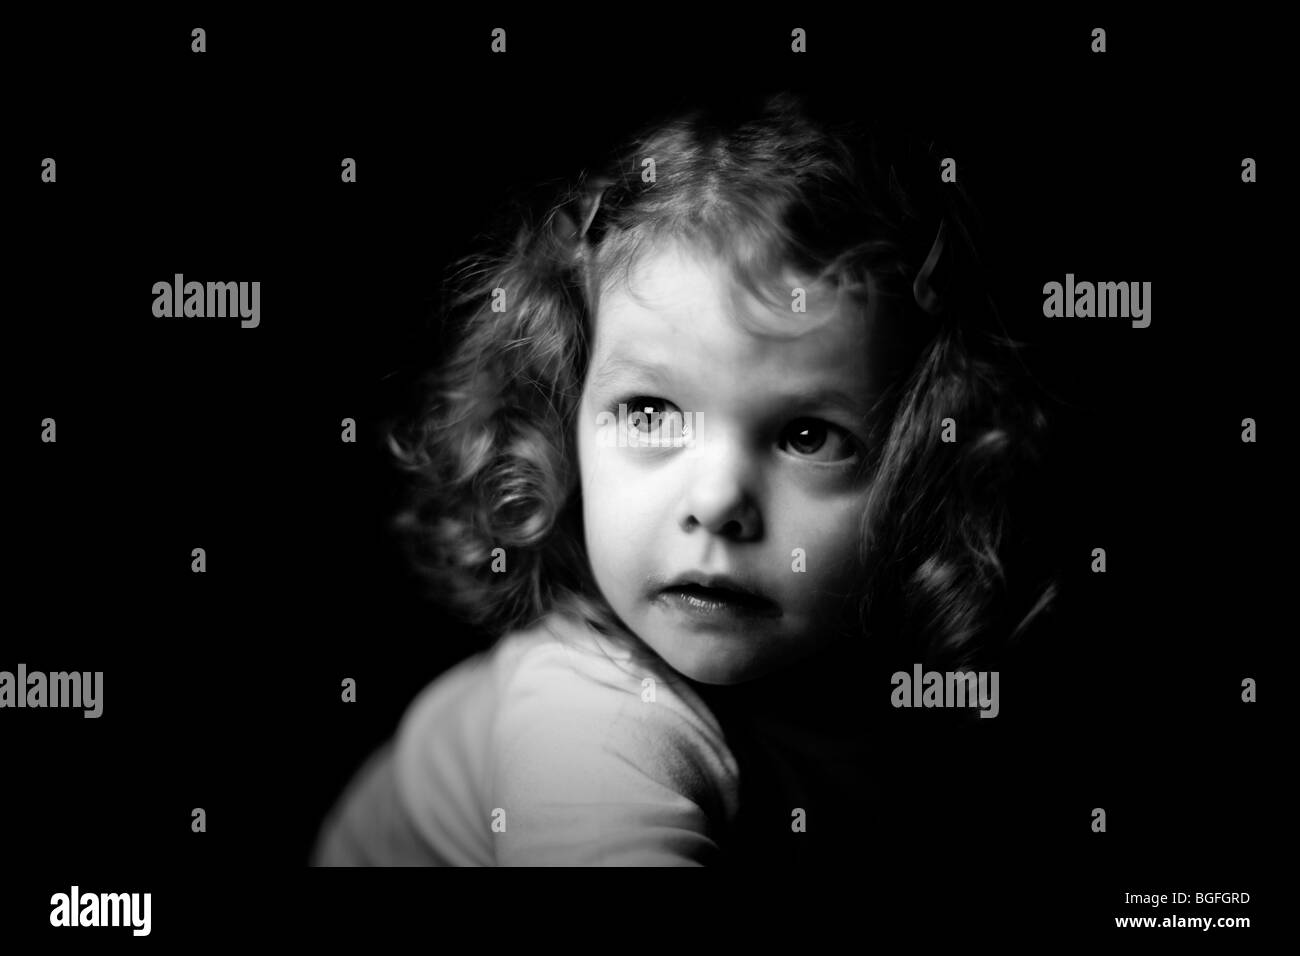 Black and white photo of a three year old girl in dramatic lighting. Black background. - Stock Image